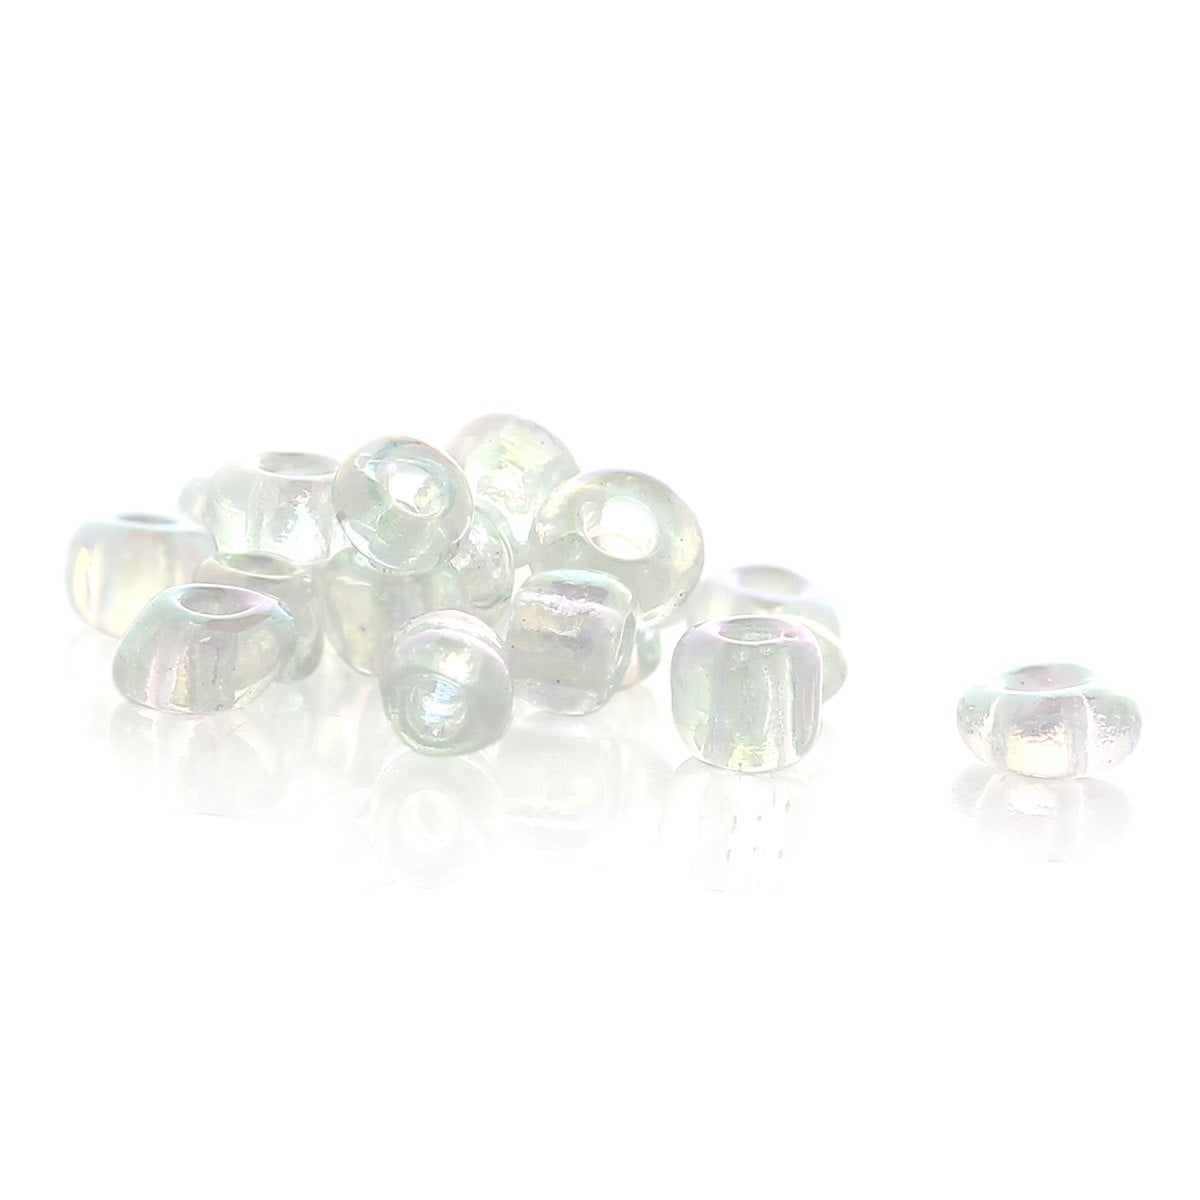 10/0 Glass Seed Beads 25g - 3125 Beads  -Transparent AB Color - 2mm x 2mm